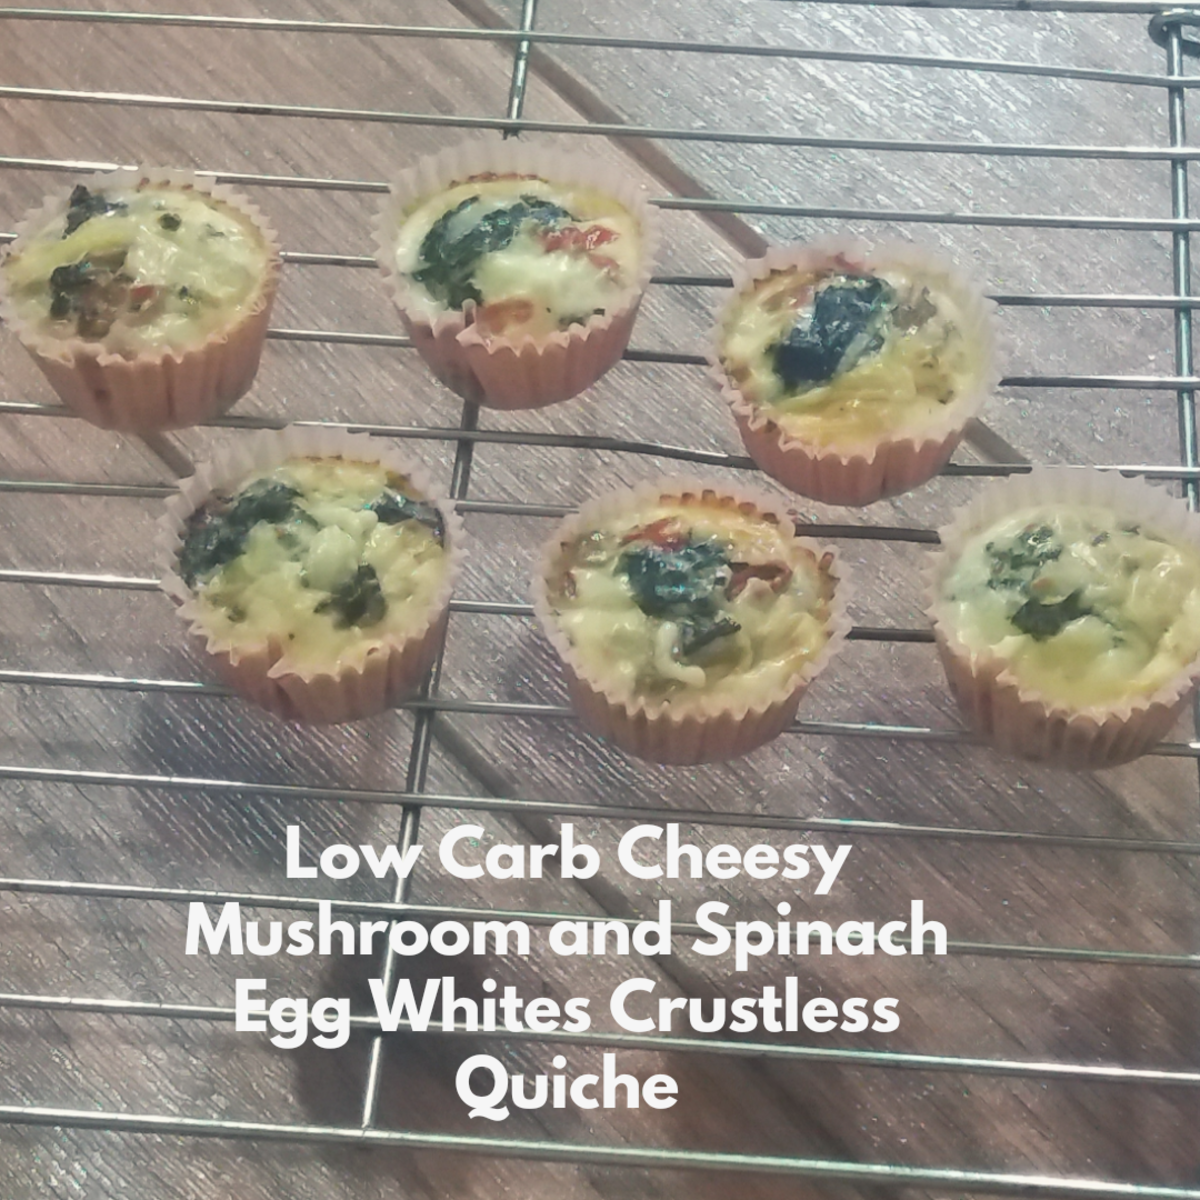 Low-Carb Crustless Quiche With Cheese, Mushroom, Spinach, and Egg Whites